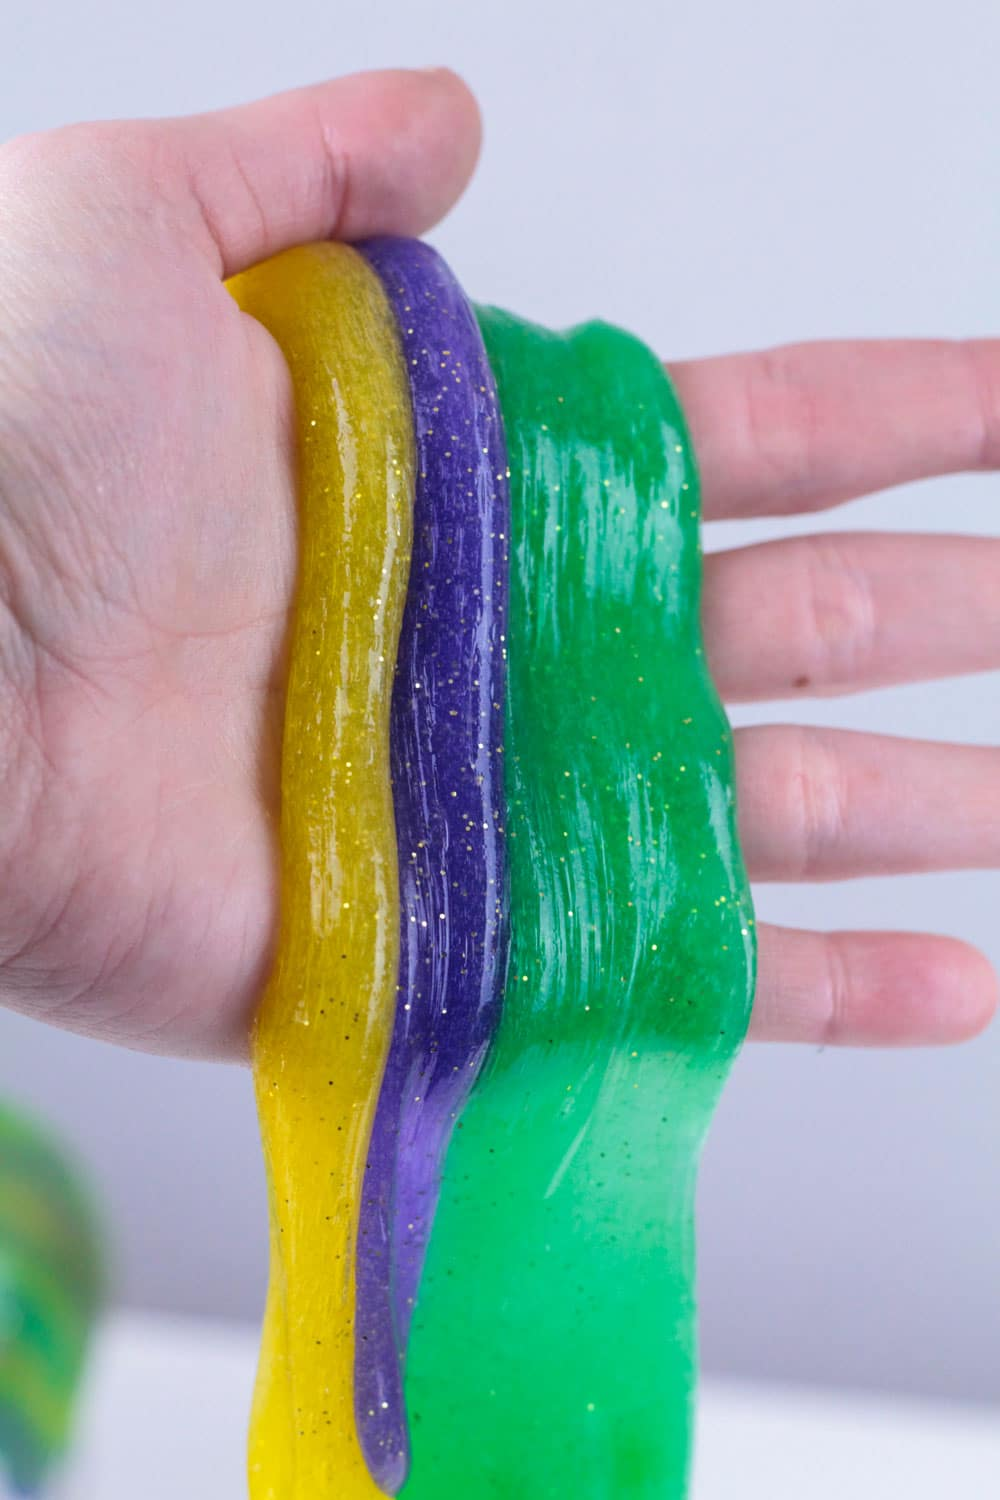 Holiday slime recipes are so much fun! This Mardi Gras slime recipe is the perfect slime recipe for Mardi Gras! The simple slime recipe is so colorful and stretchy, it's the perfect Mardi Gras activity for kids!